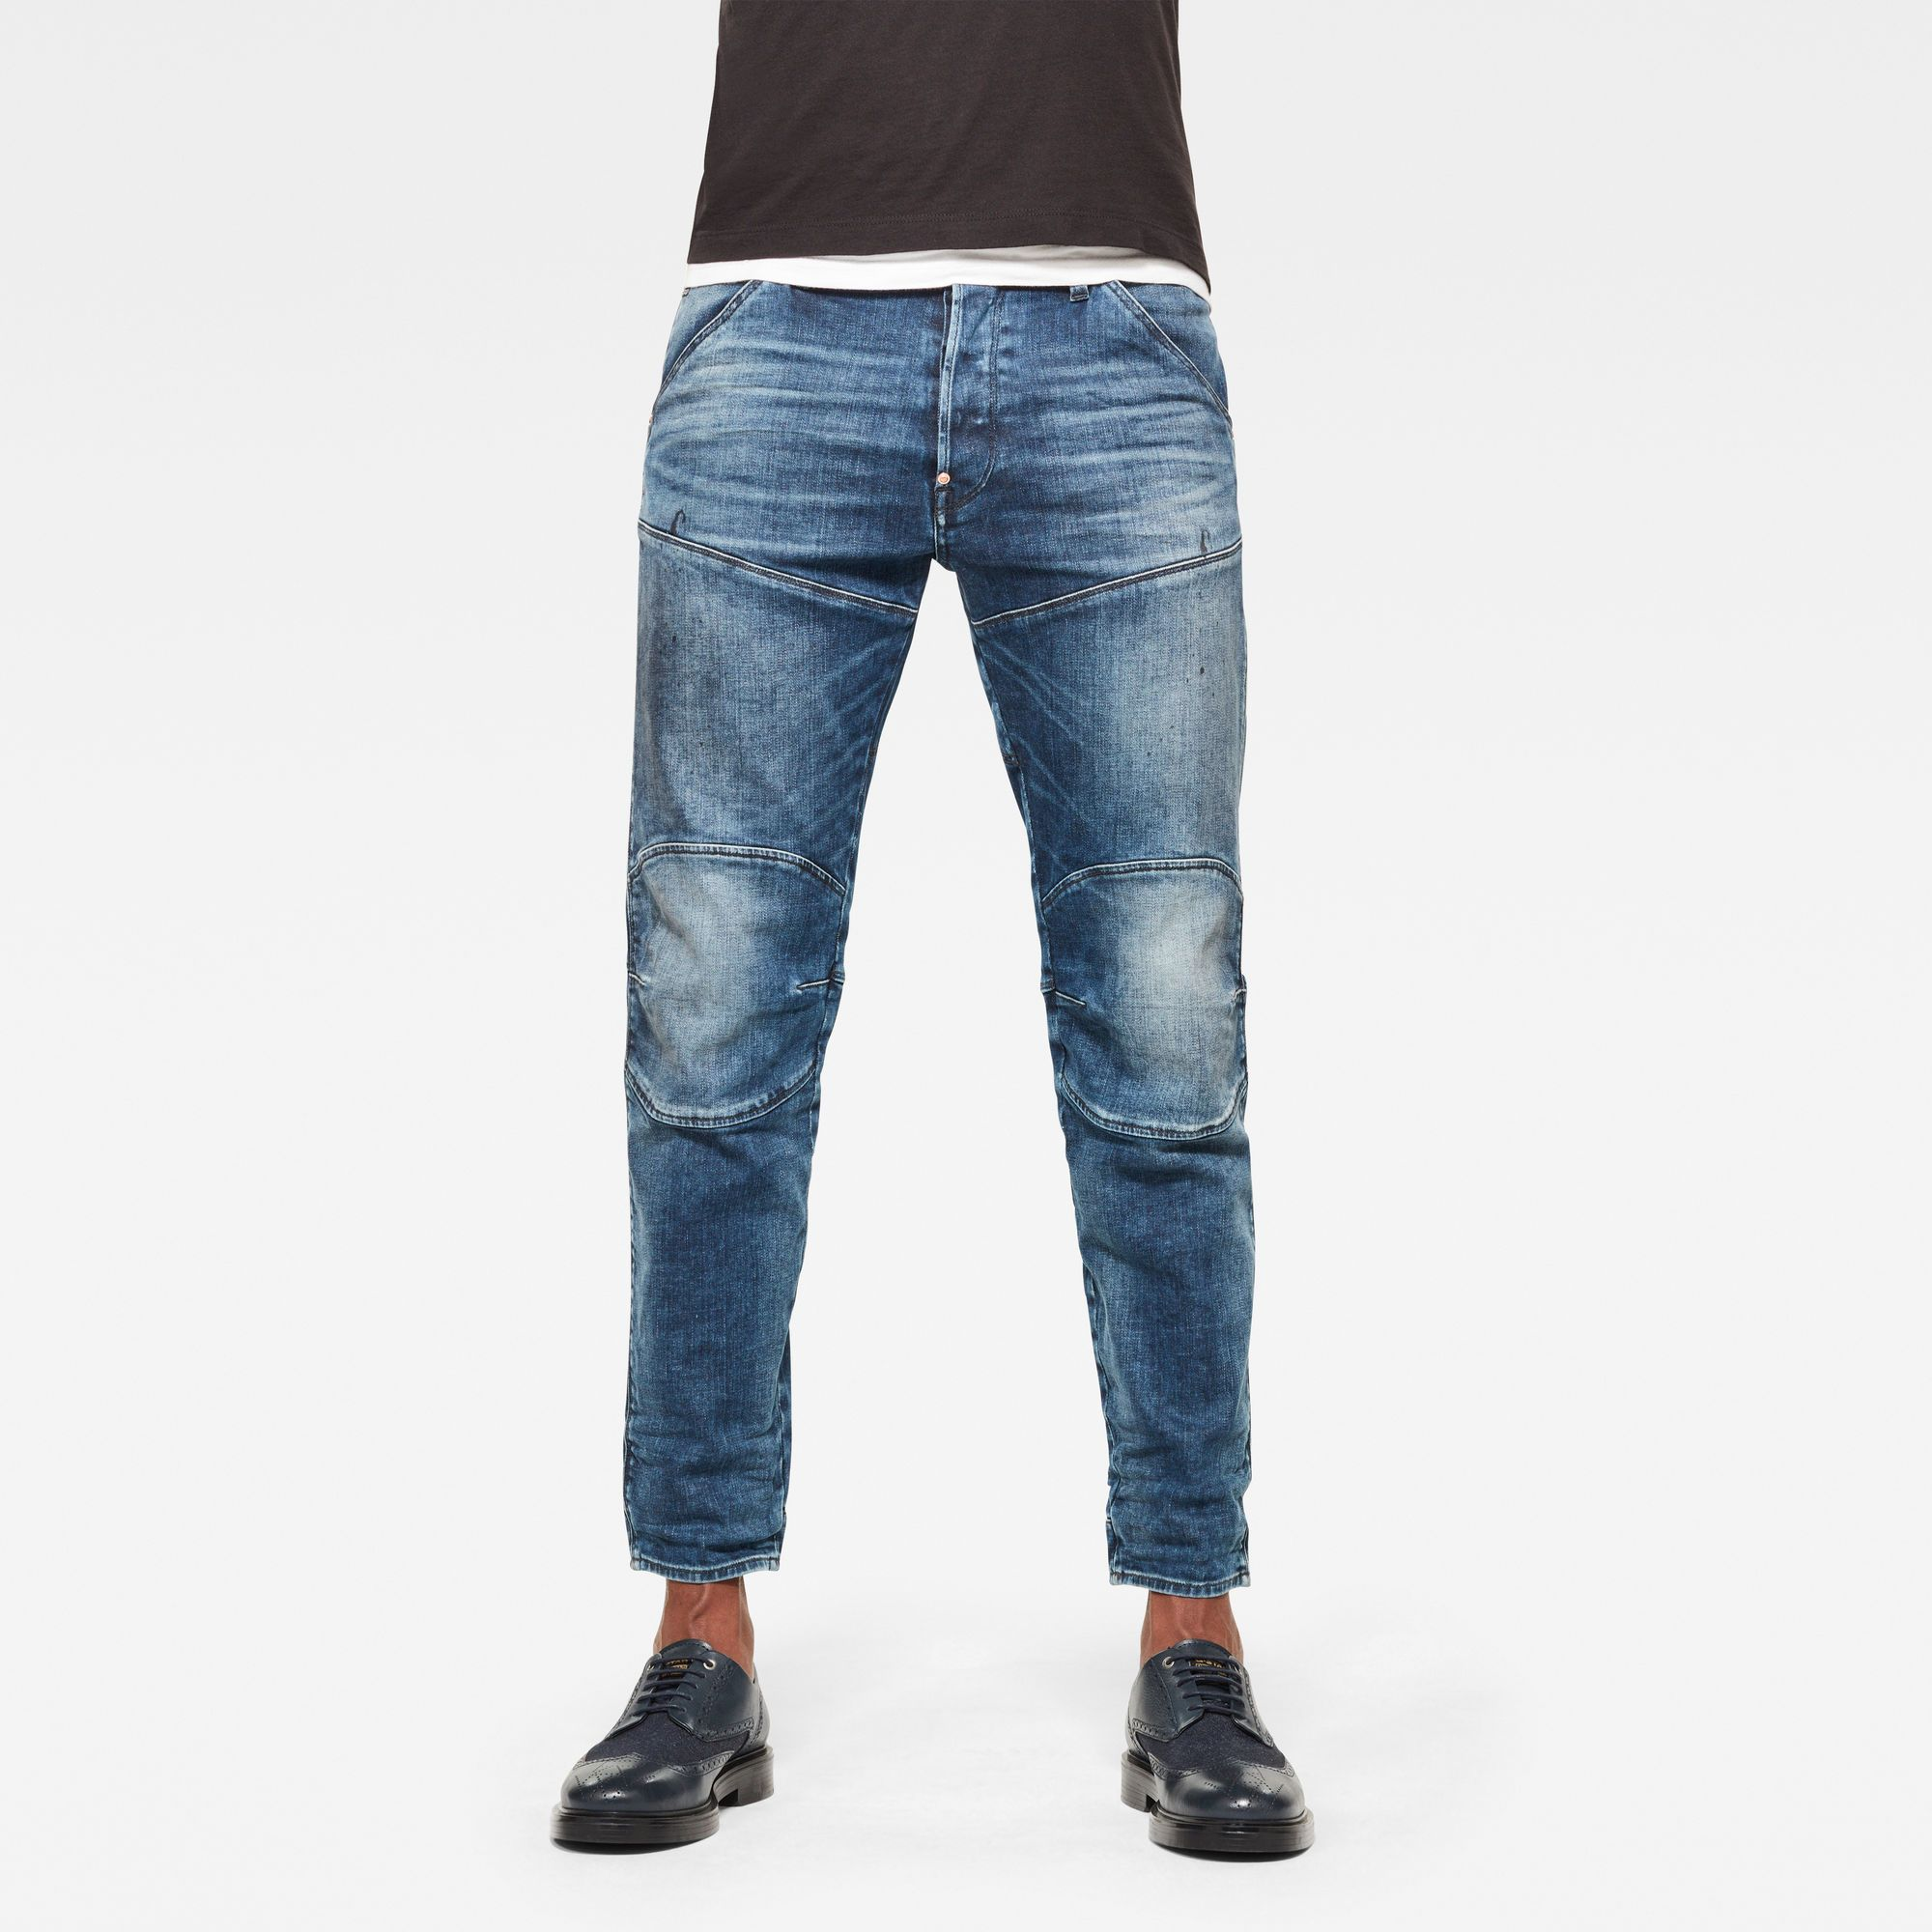 G-Star RAW 5620 3D Original Relaxed Tapered Jeans